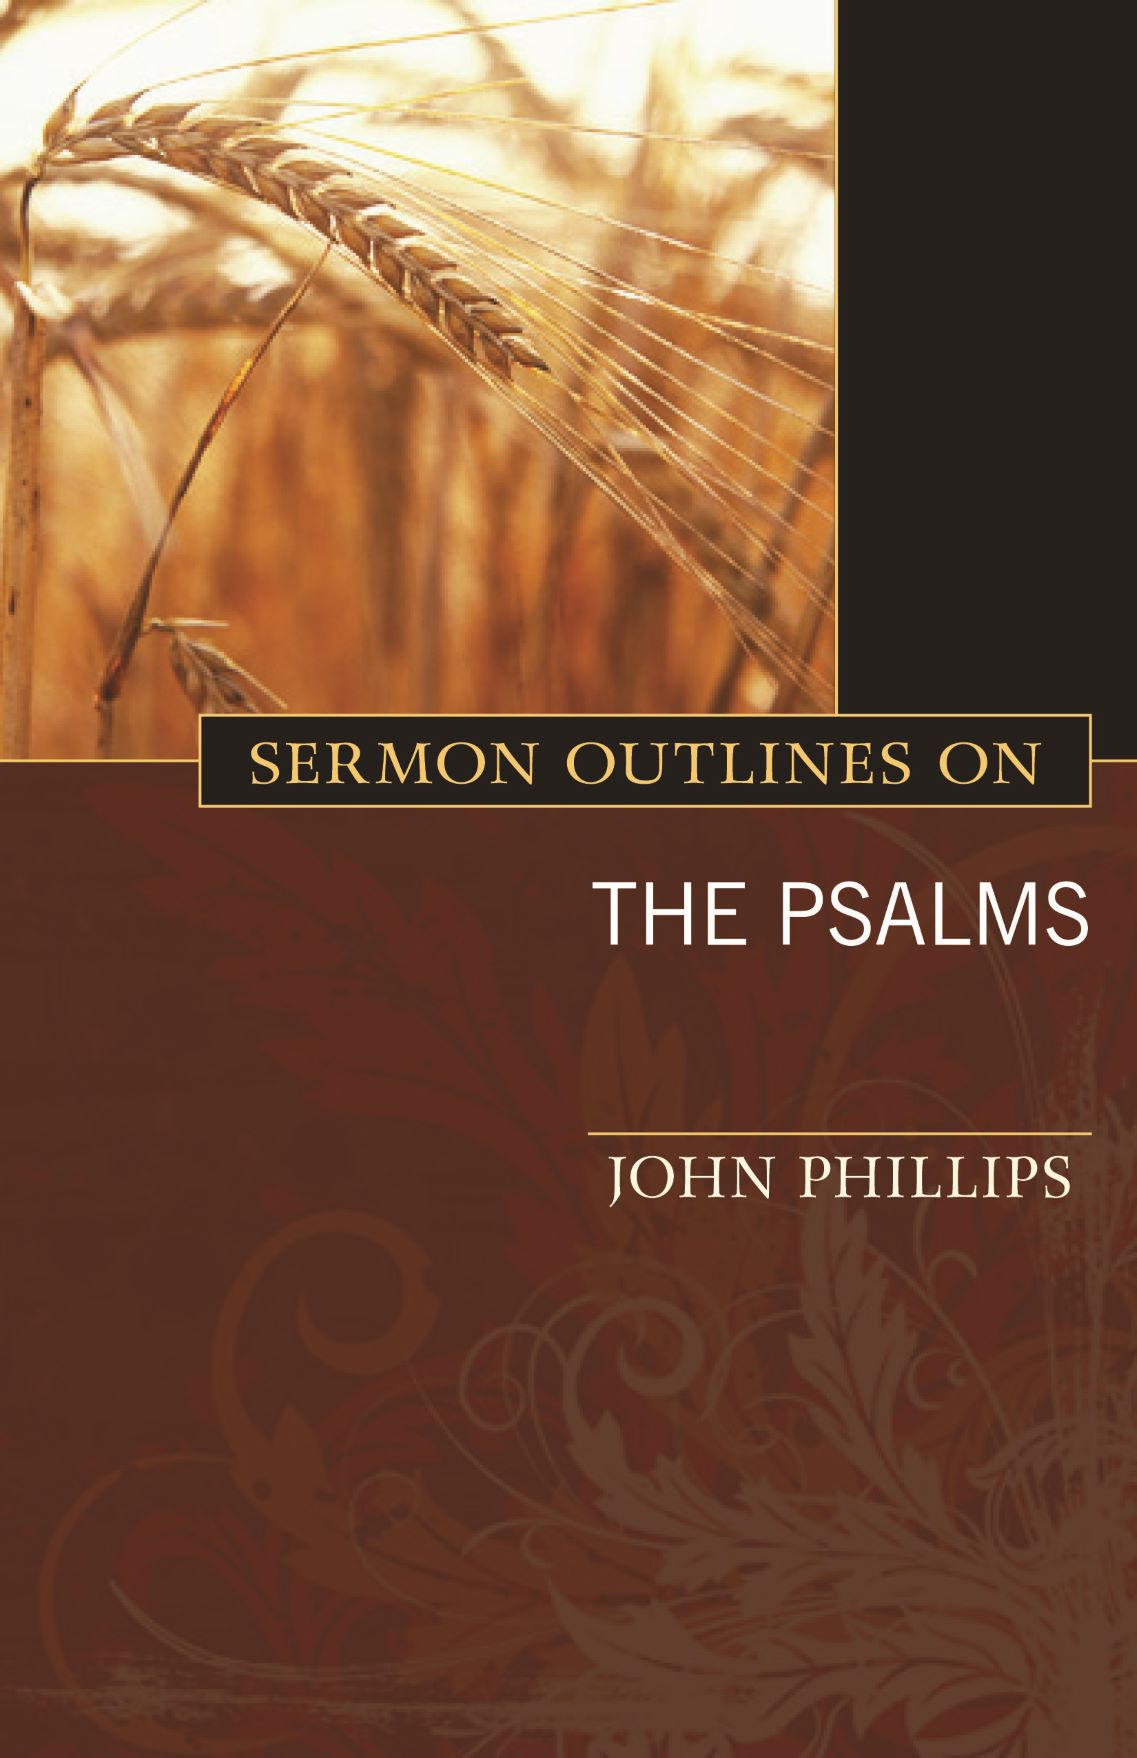 Sermon Outlines on the Psalms